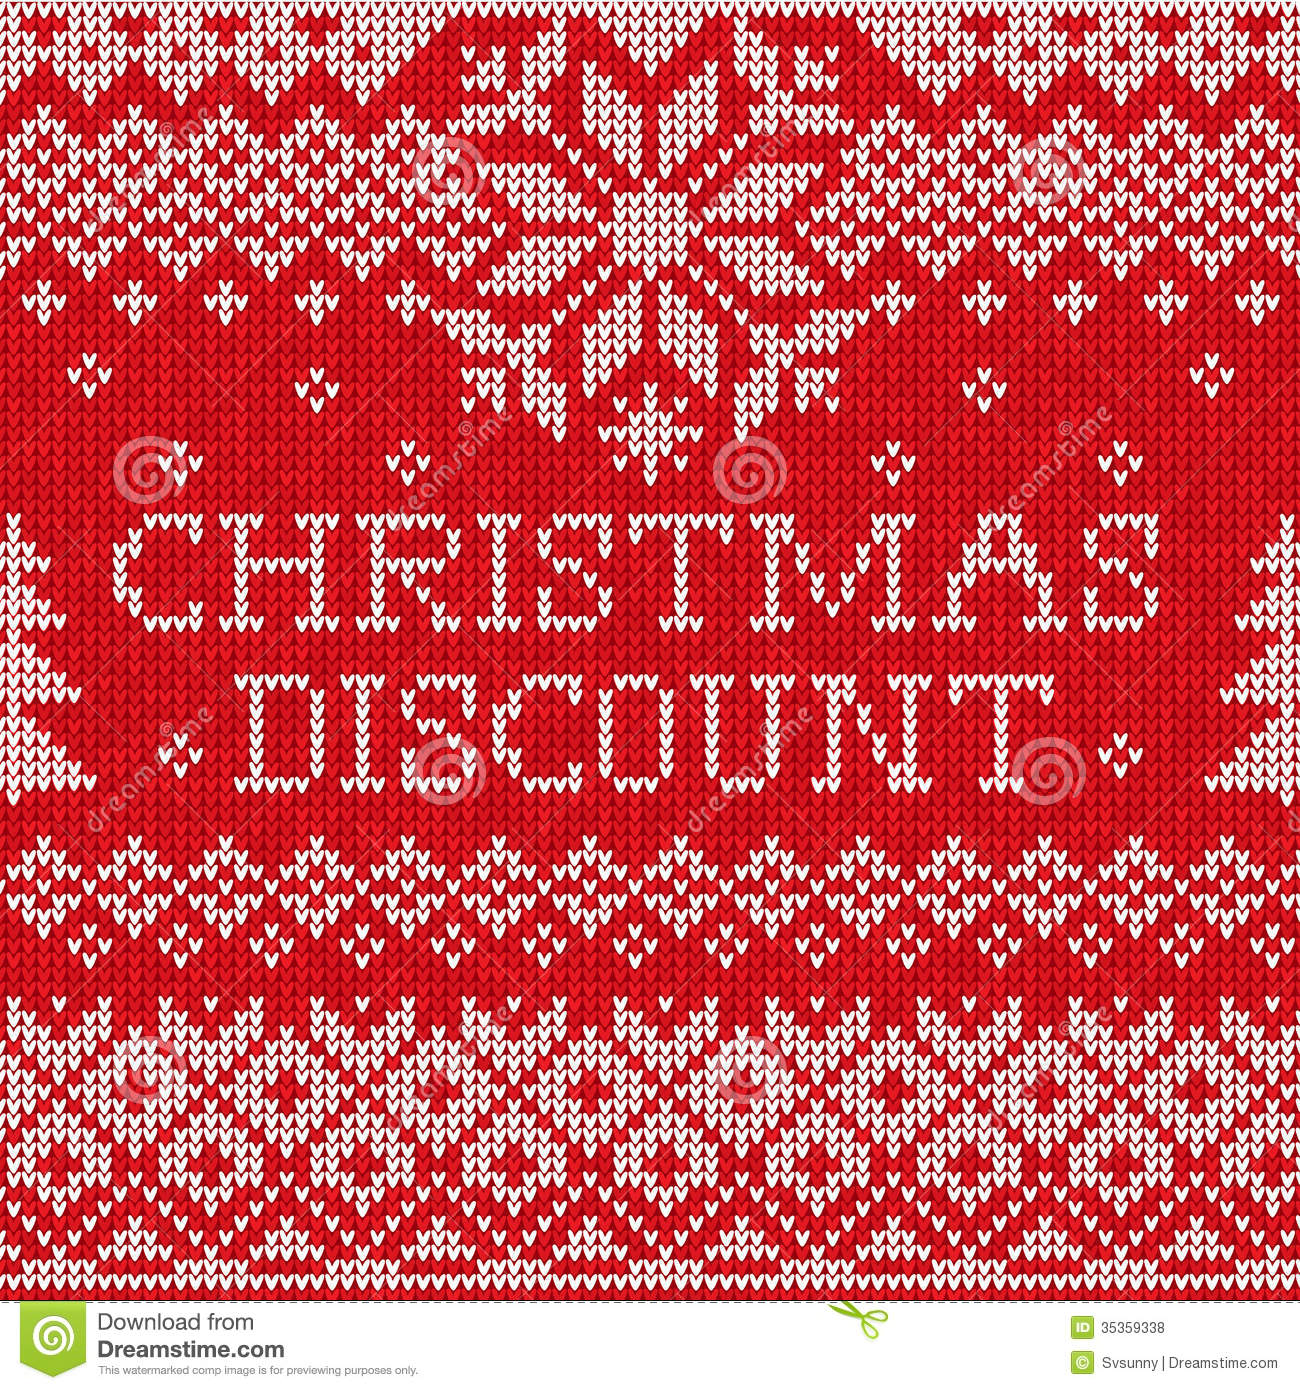 Knit Pattern Christmas Vector : Christmas Discount: Scandinavian Style Seamless Knitted Pattern Royalty Free ...